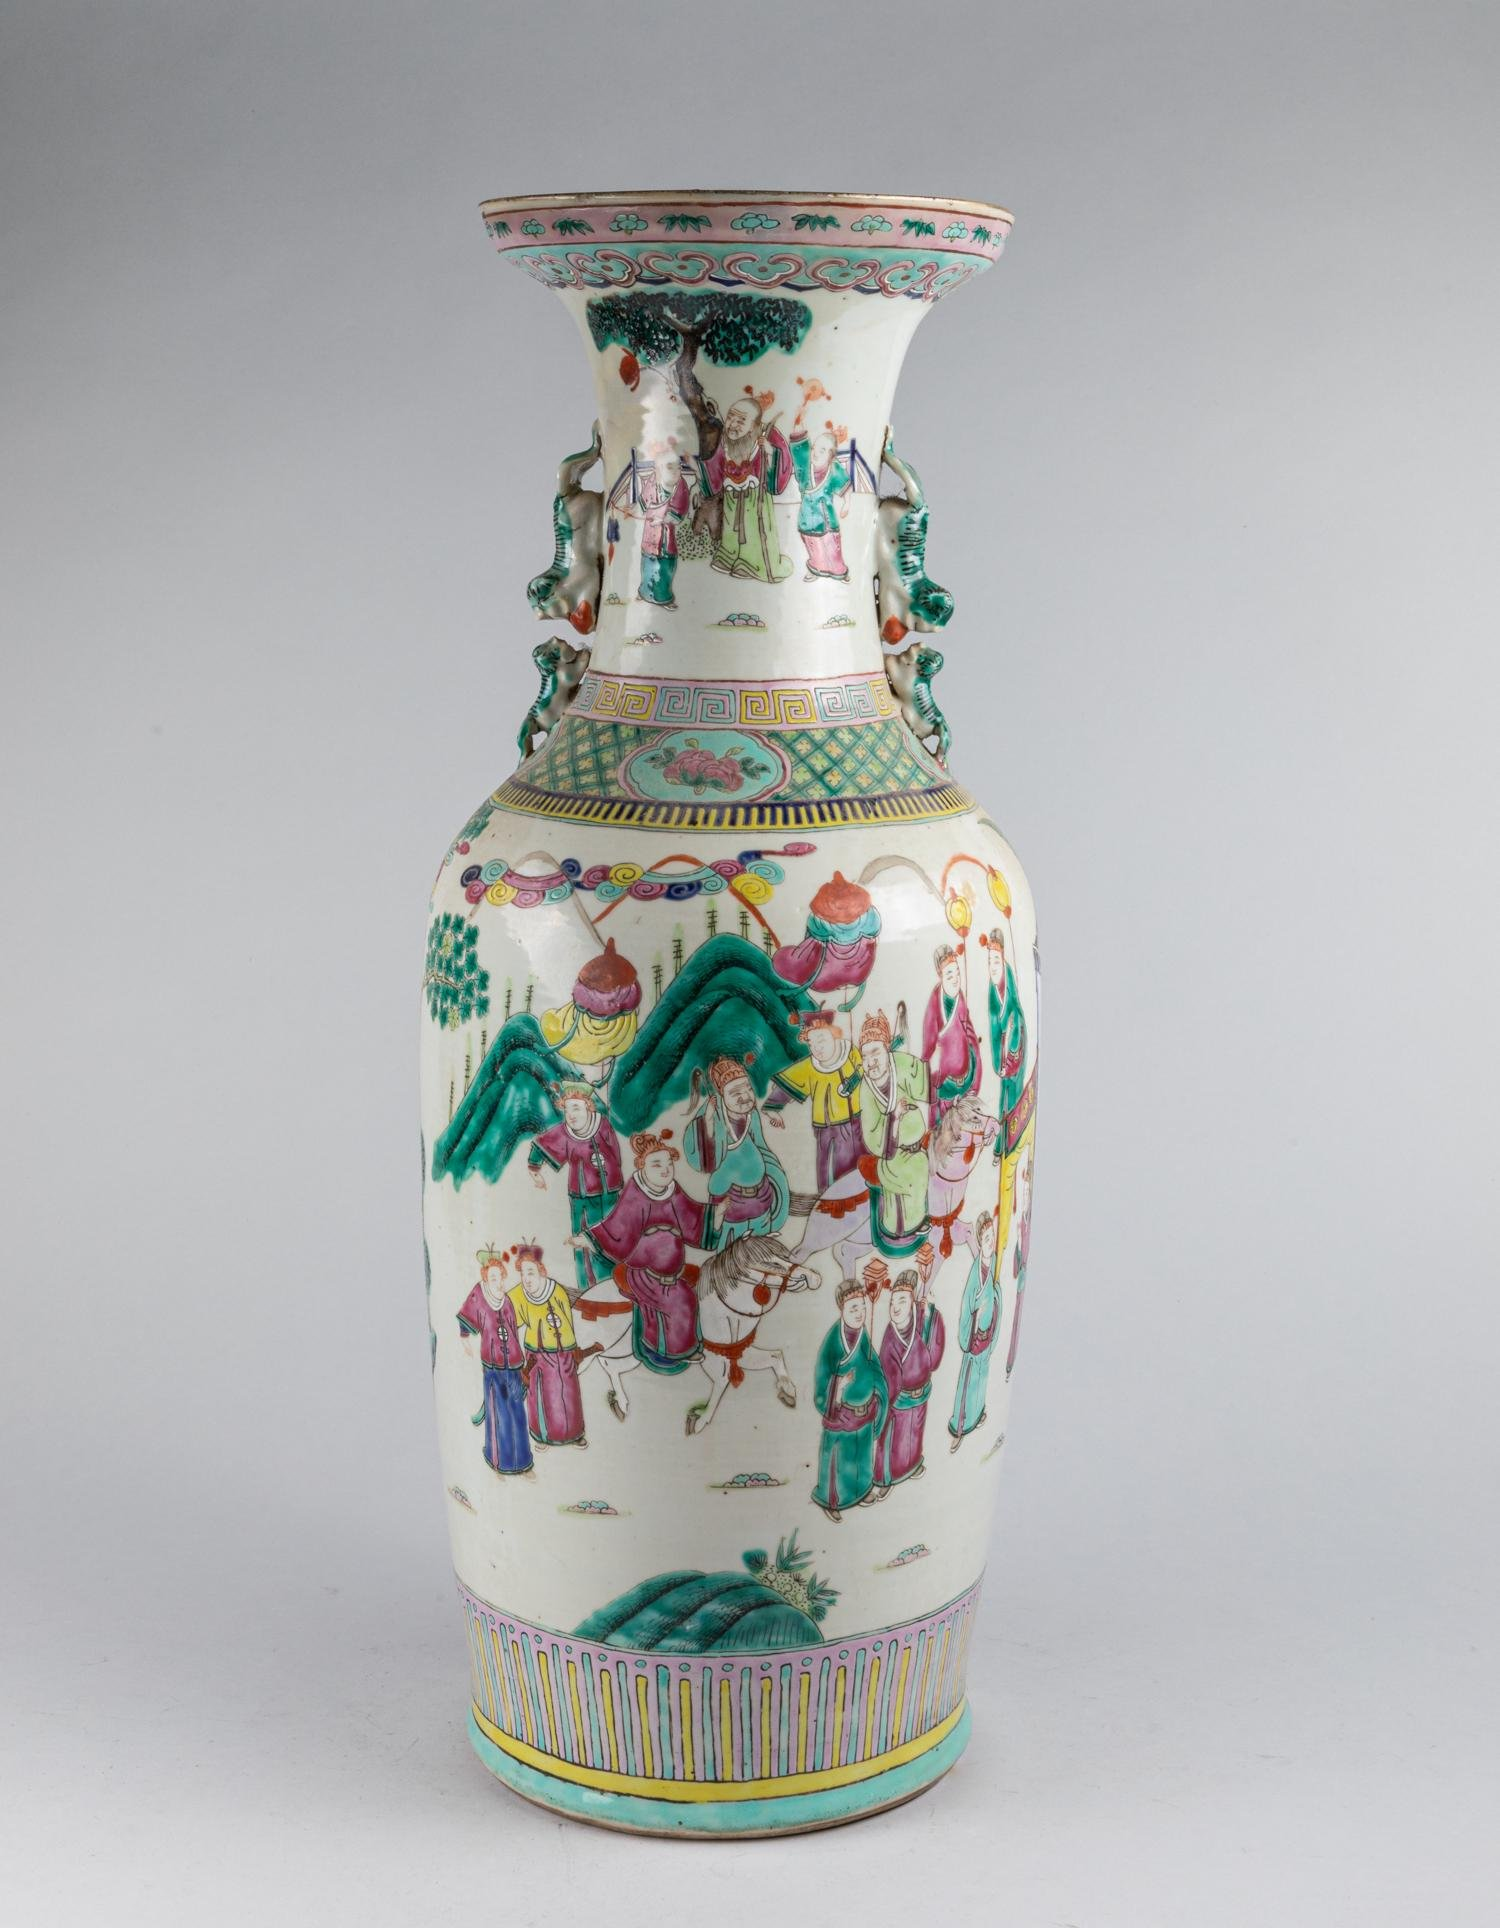 REPAIRED Large Chinese Antique Wucai Porcelain Vase